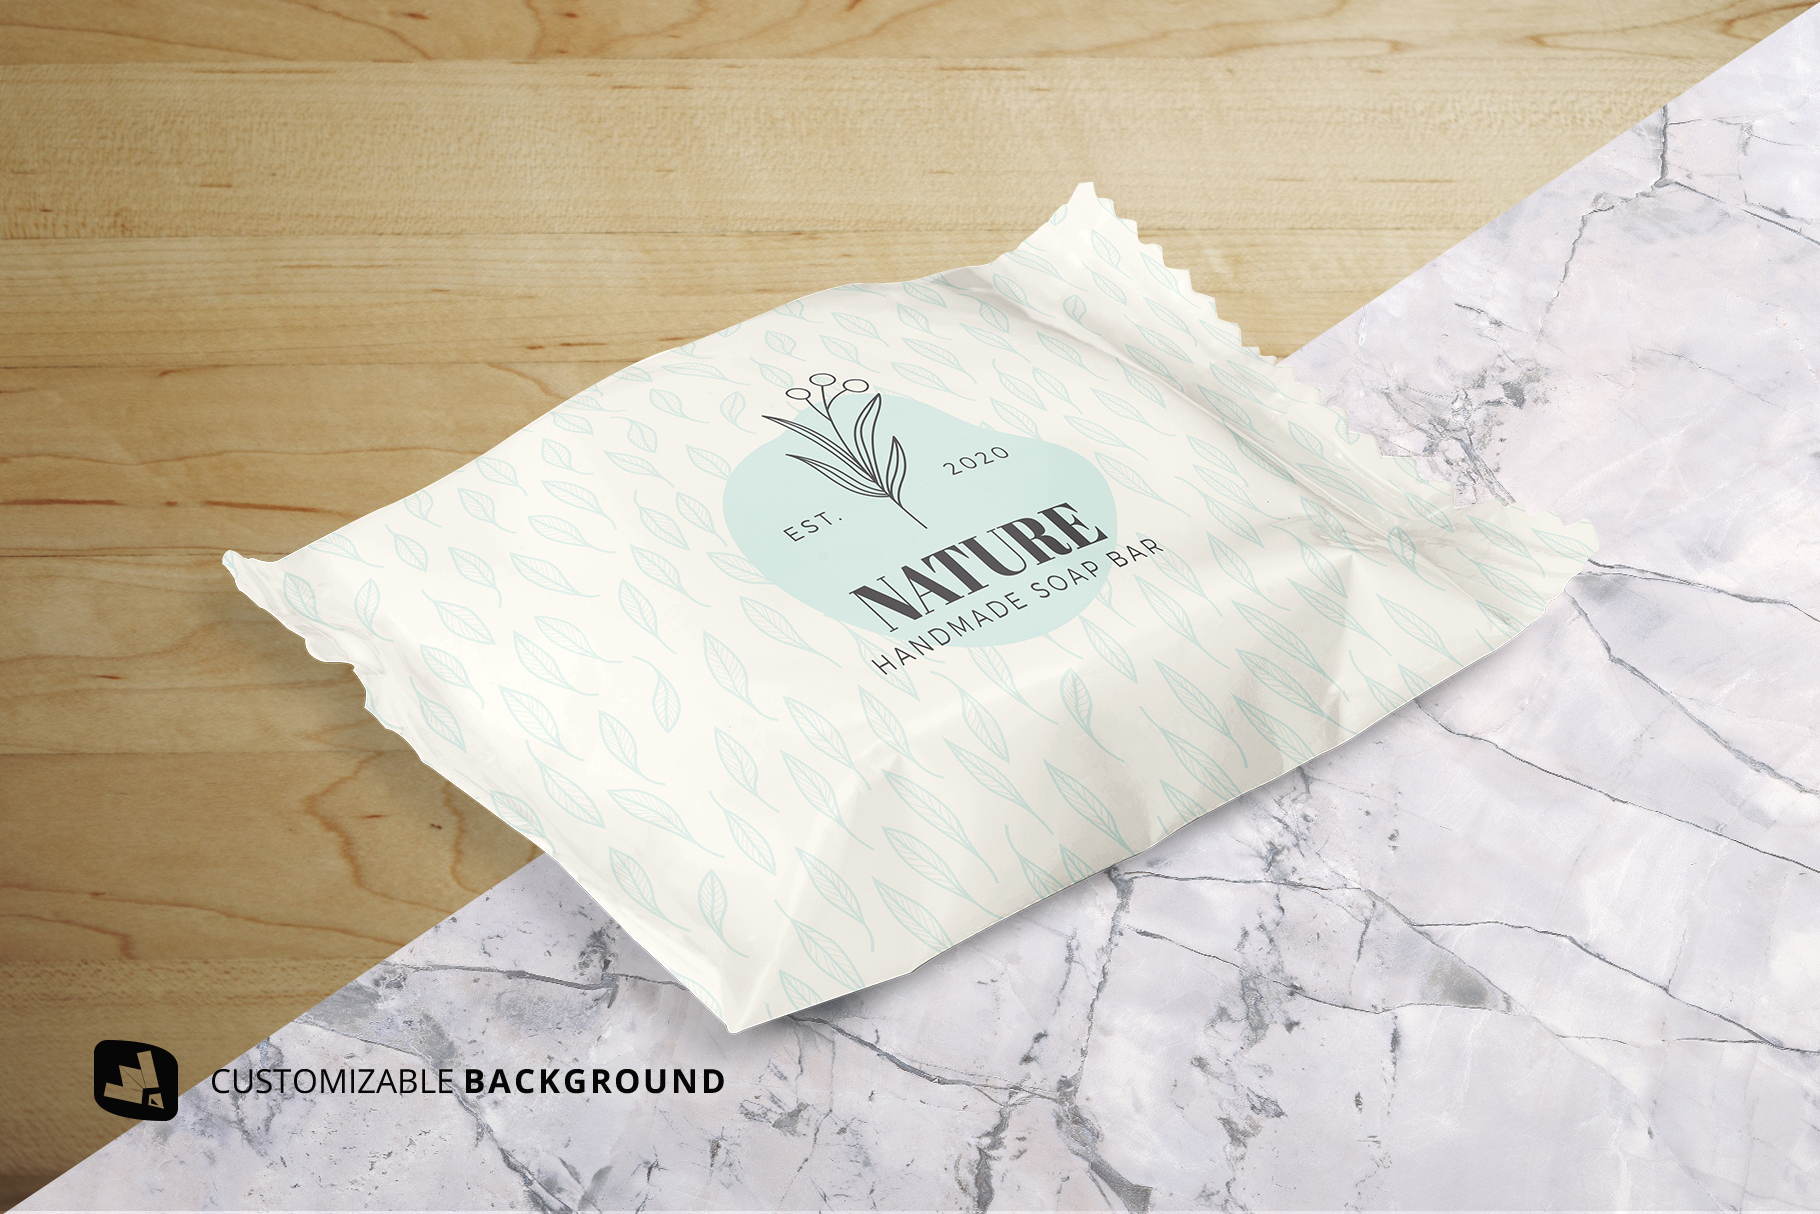 background options of the hand made soap bar packaging mockup